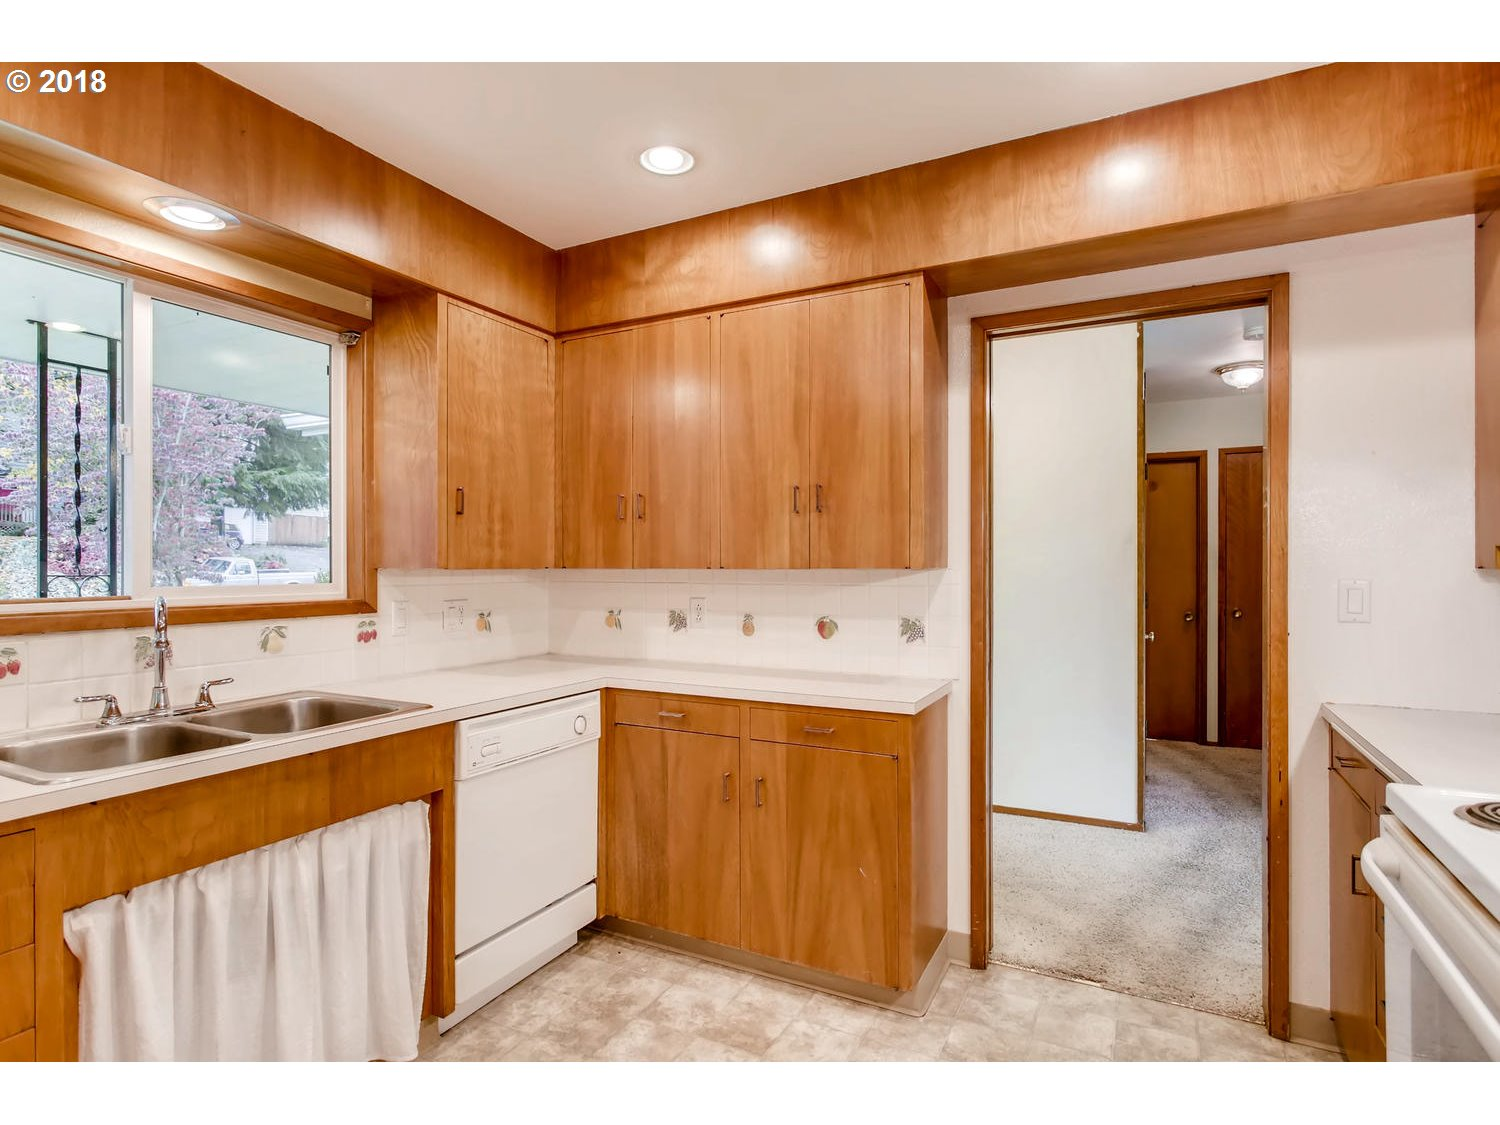 2320 6TH ST Columbia City, OR 97018 - MLS #: 18543246